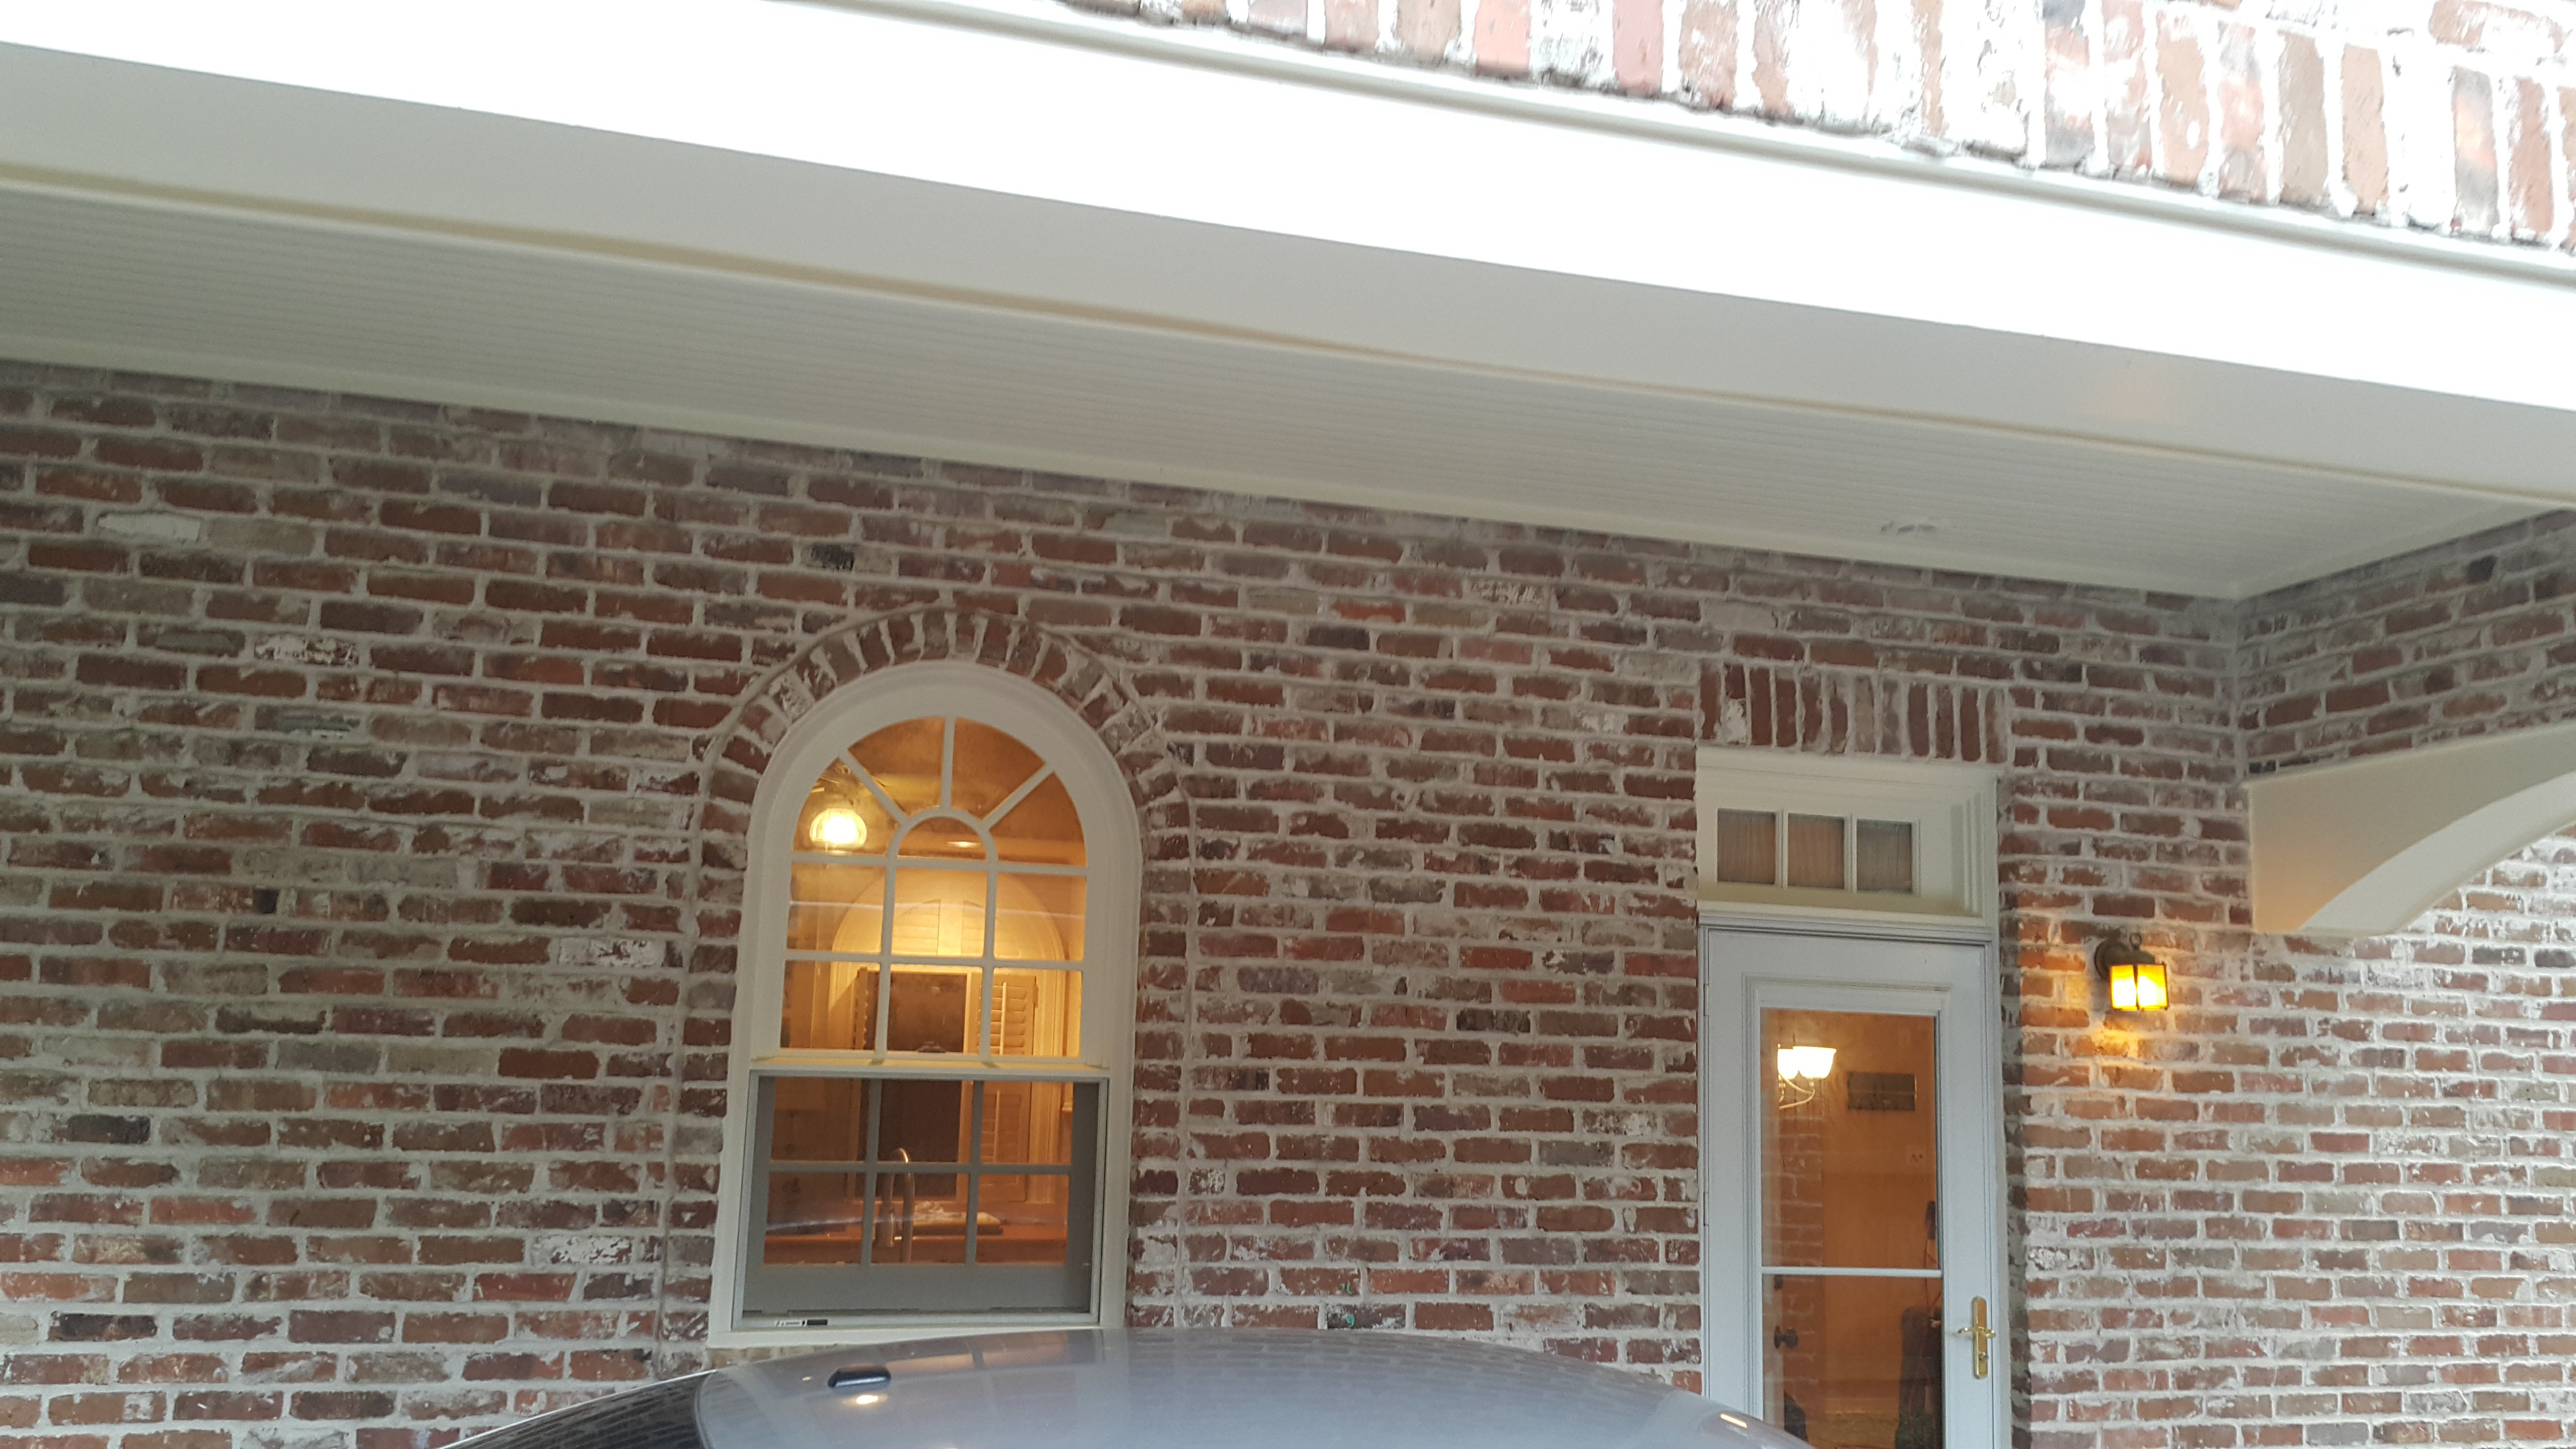 Residential Window Cleaning Company in Katy, Texas